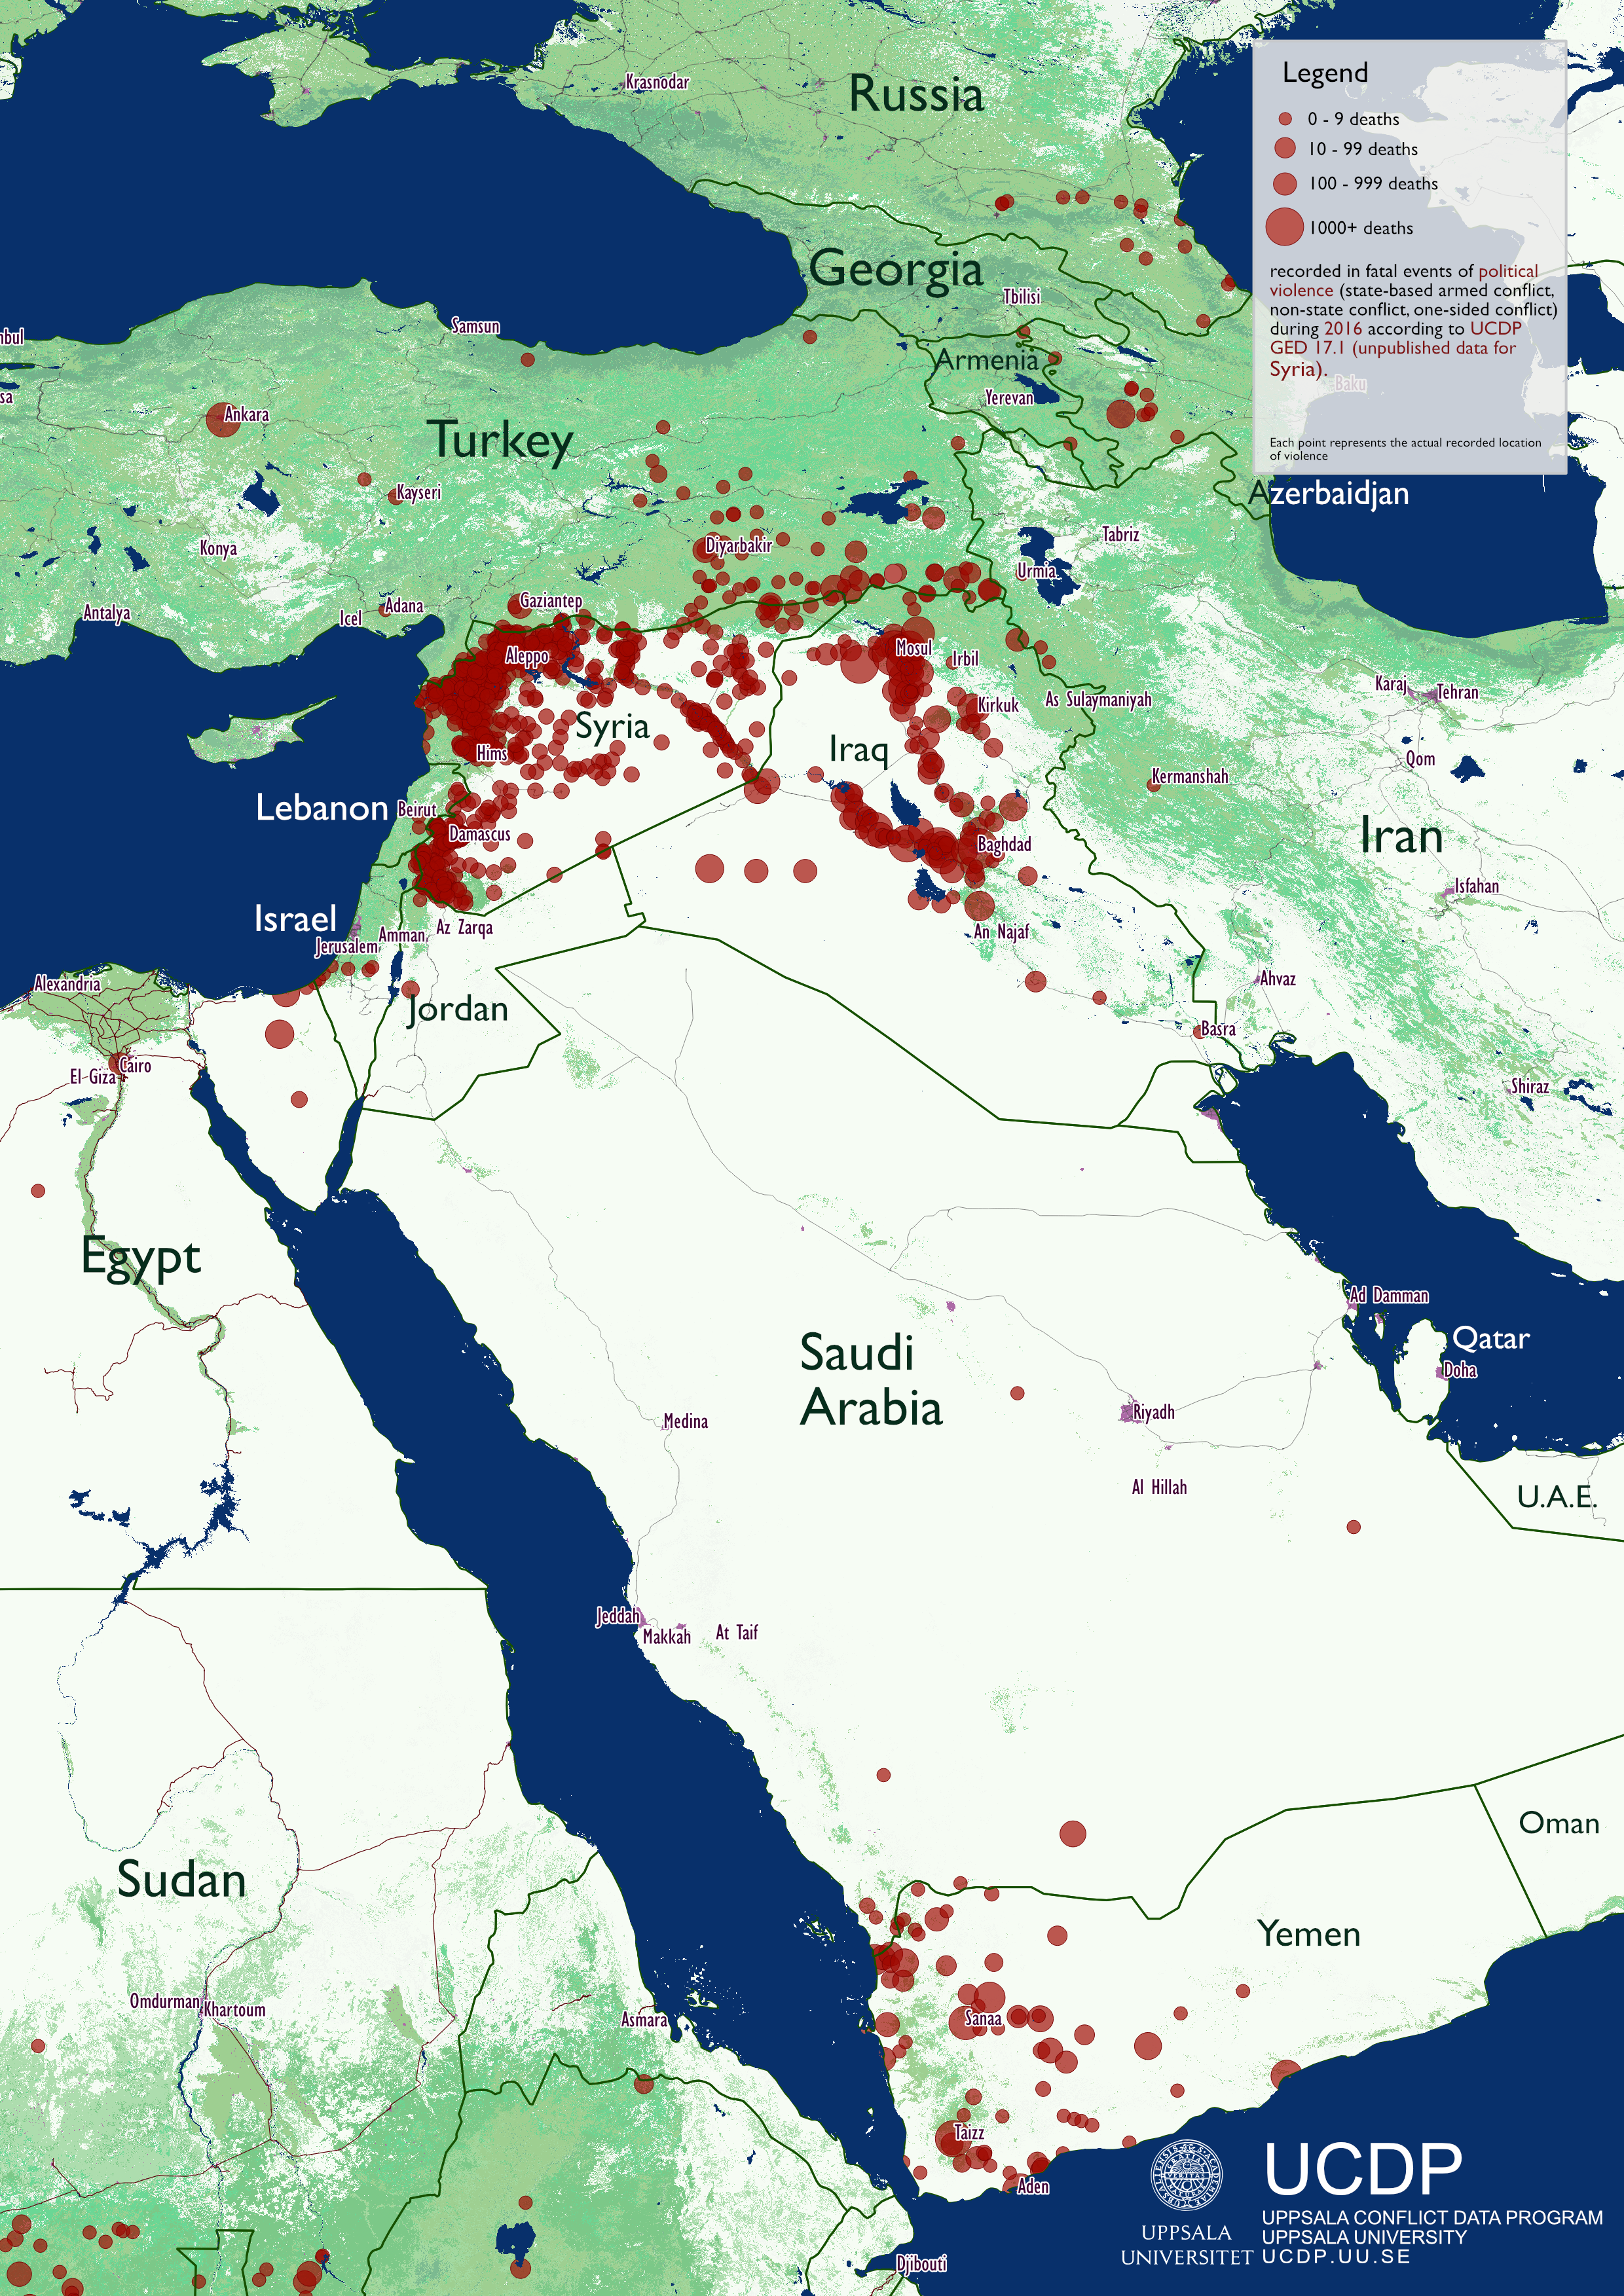 Charts graphs and maps department of peace and conflict research map of the worlds conflicts in 2016 ucdp ged map middle east 2016 gumiabroncs Gallery